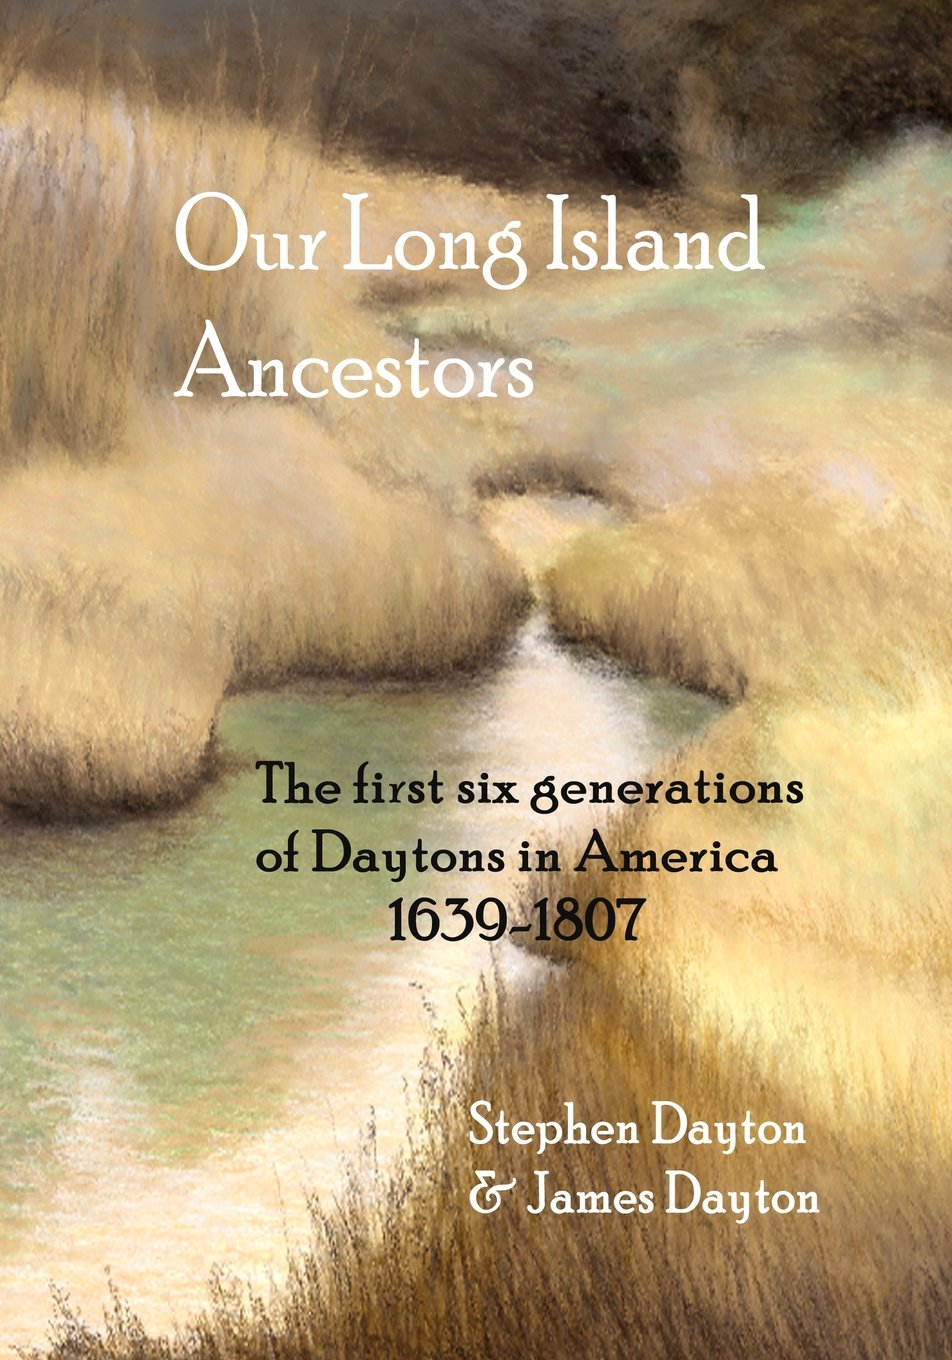 Our Long Island Ancestors: The first six generations of Daytons in America  1639-1807 Paperback – May 1, 2017